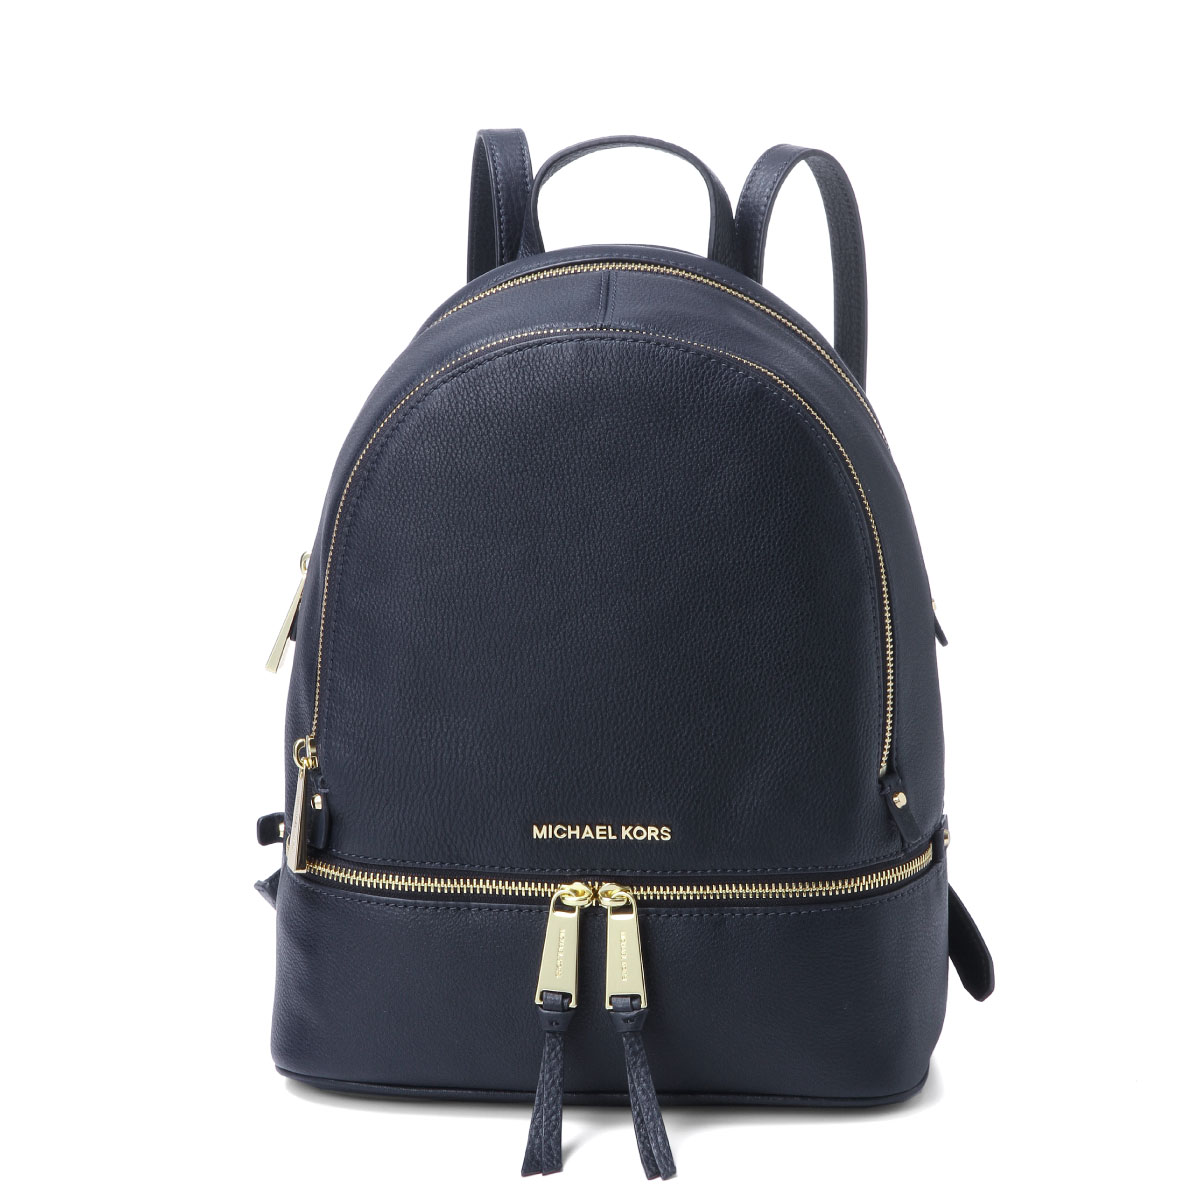 fffb23c88 Michael Kors MICHAEL KORS bag lady 30S5GEZB1L 414 backpack medium RHEA rare  ADMIRAL dark blue ...